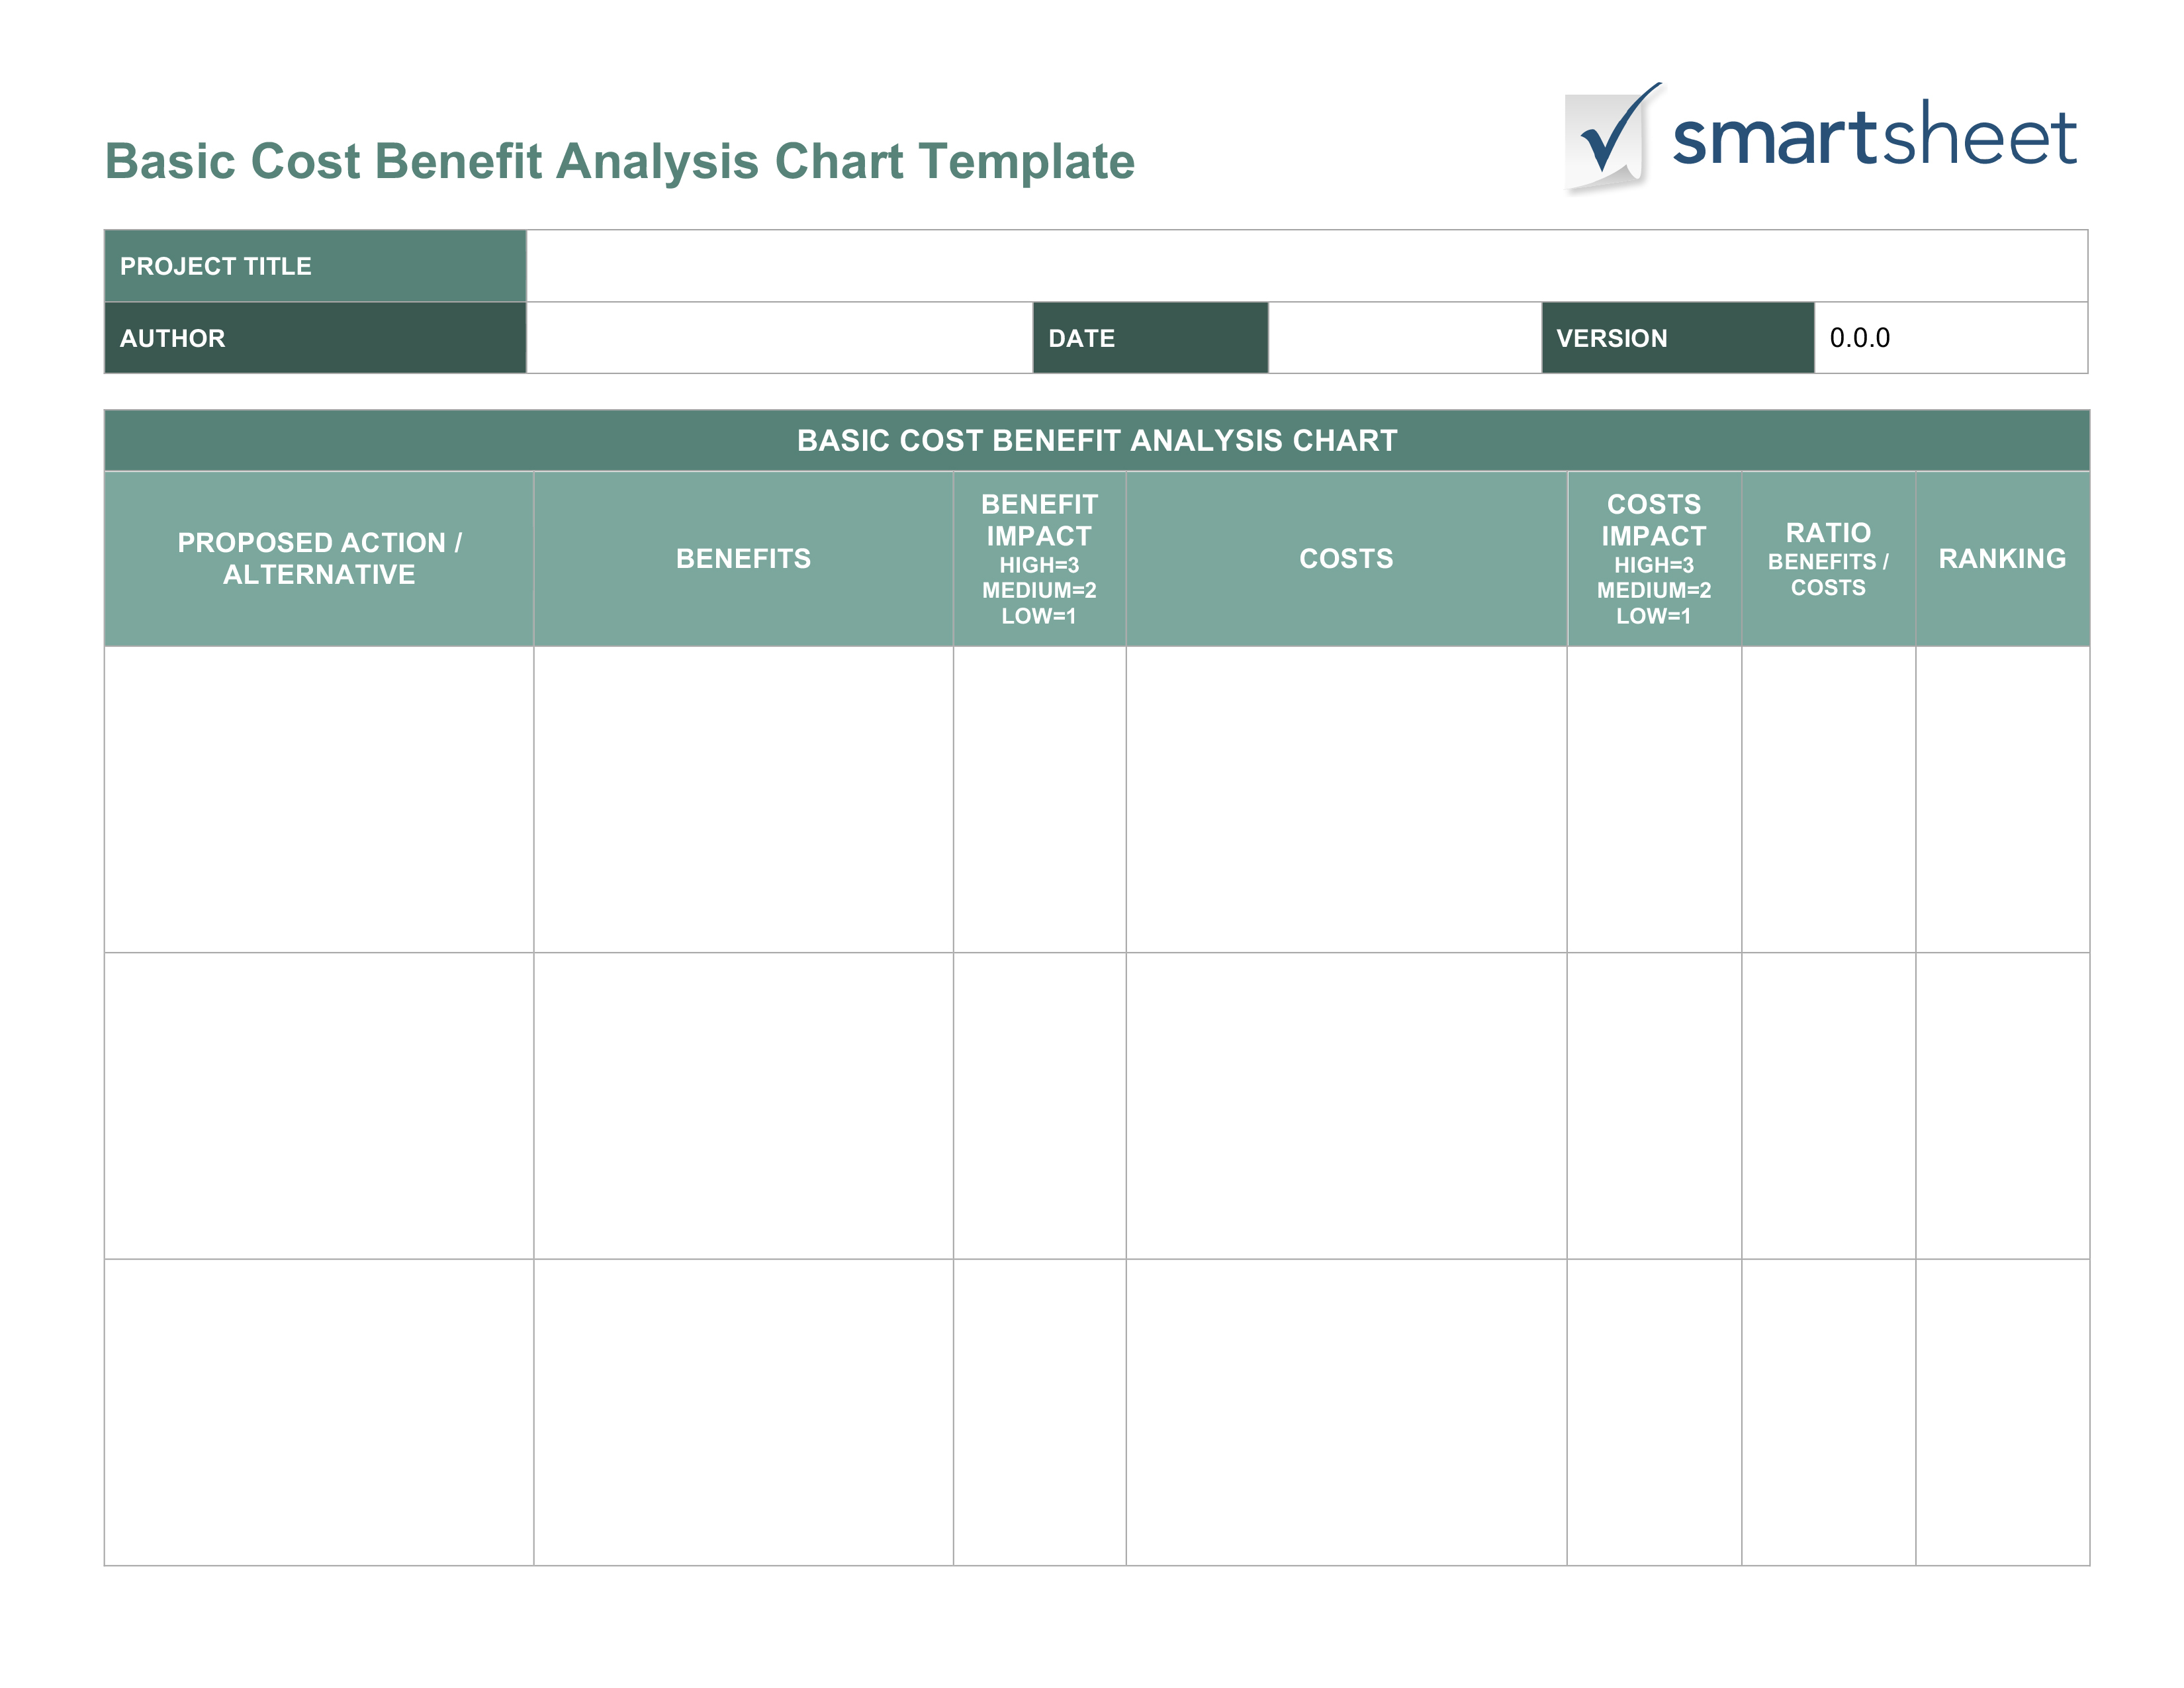 Free Cost Benefit Analysis Templates Smartsheet With Downloadable Project Management Templates And Other Resources